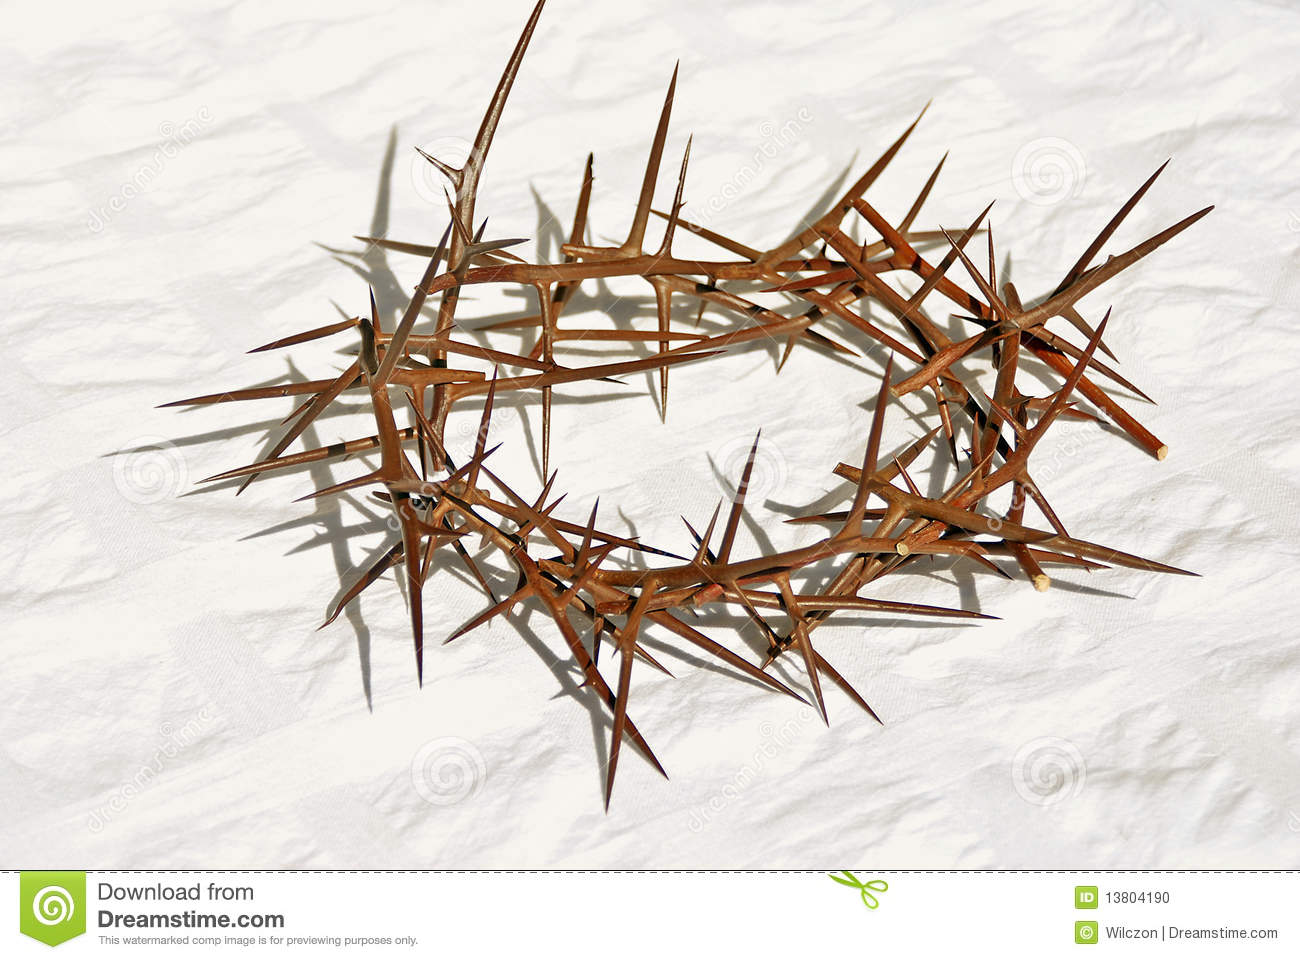 Crown Of Thorns Stock Photo - Image: 13804190